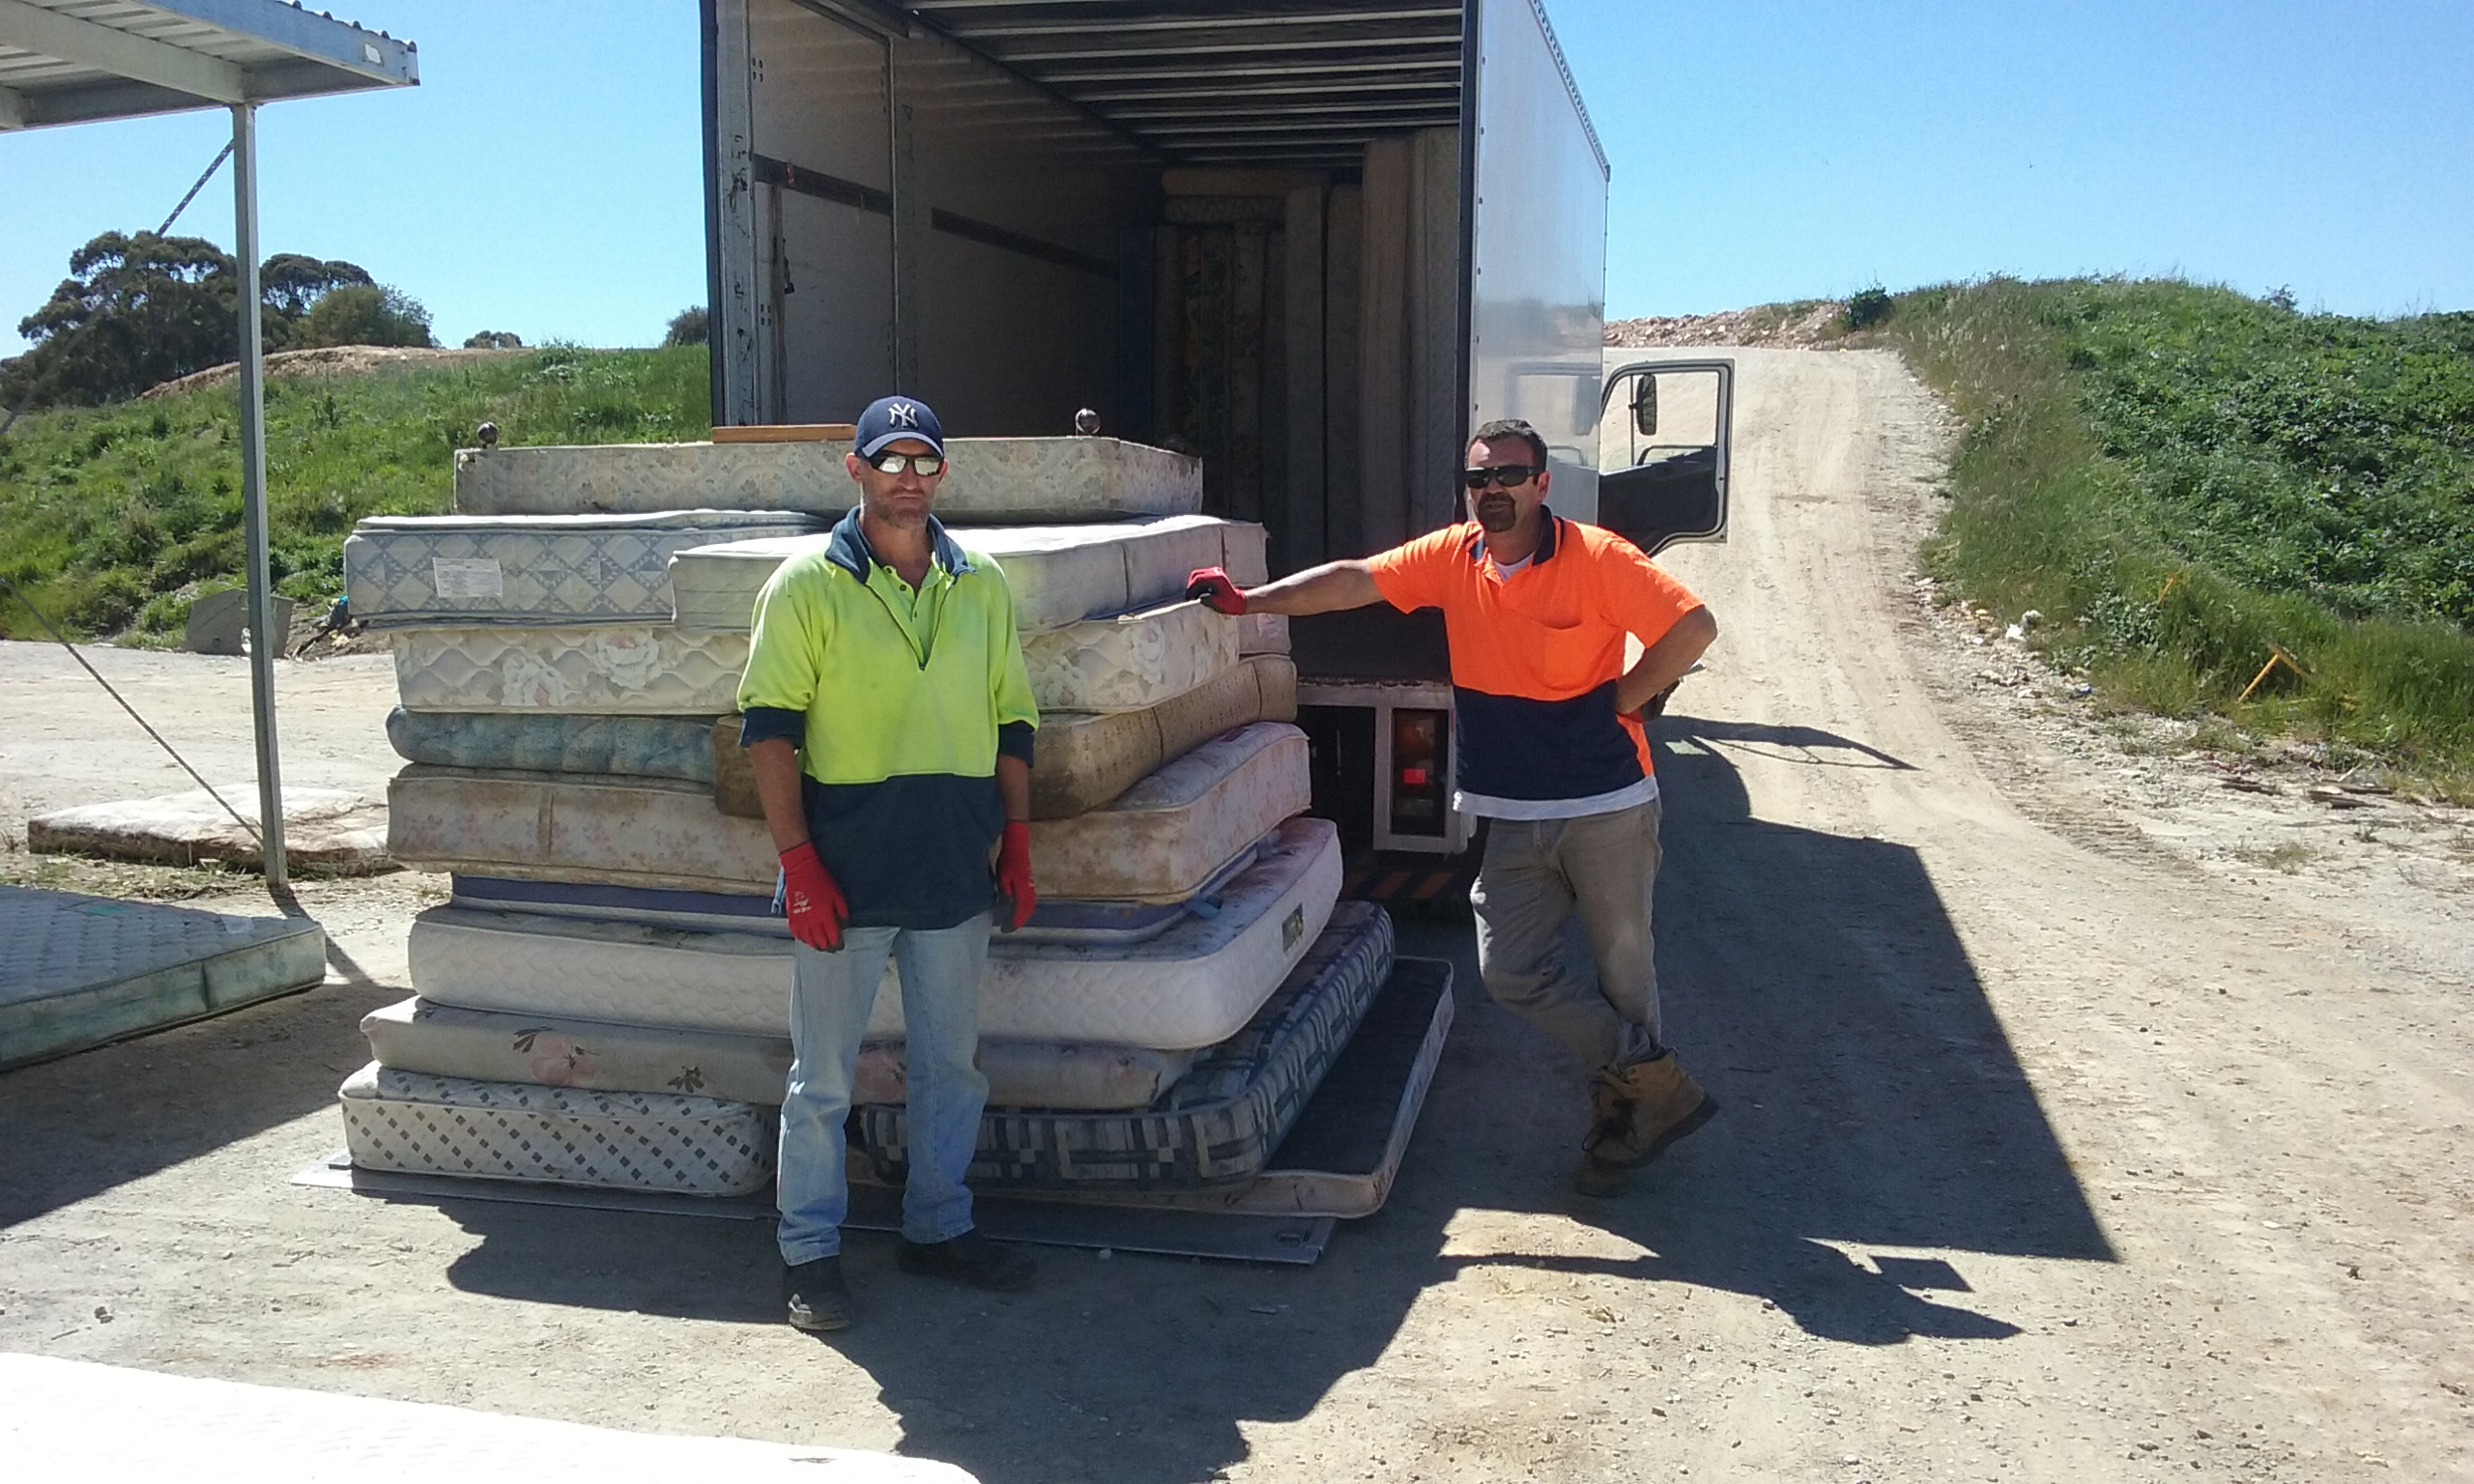 mattress recycling. Mattress Recycling Is Available At Council\u0027s Waste And Centres. A